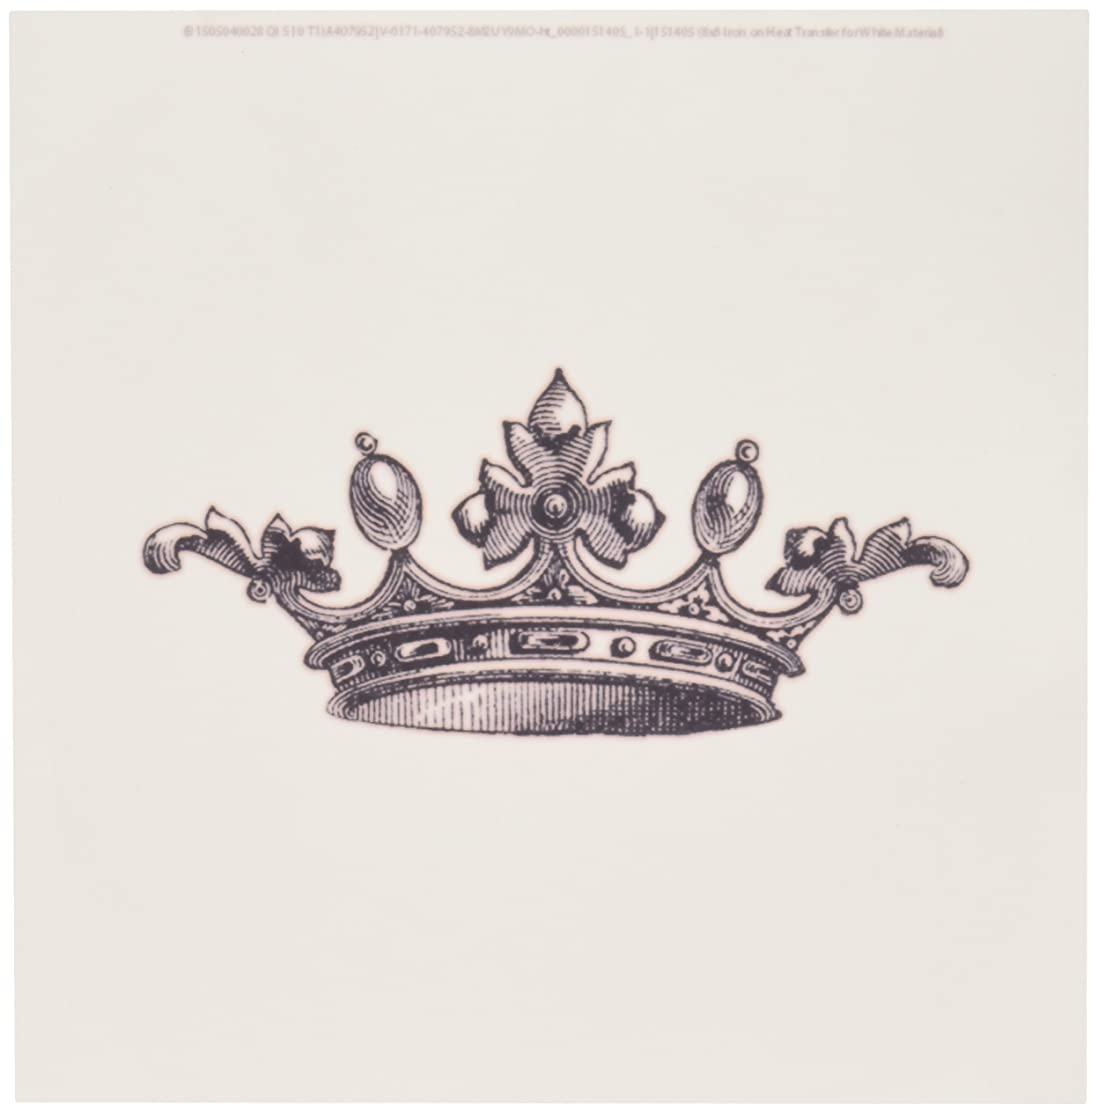 3dRose ht_151405_1 Majestic Crown Black and White-Royal Tiara-Like Crown-Vintage Art-Iron on Heat Transfer for White Material, 8 by 8-Inch